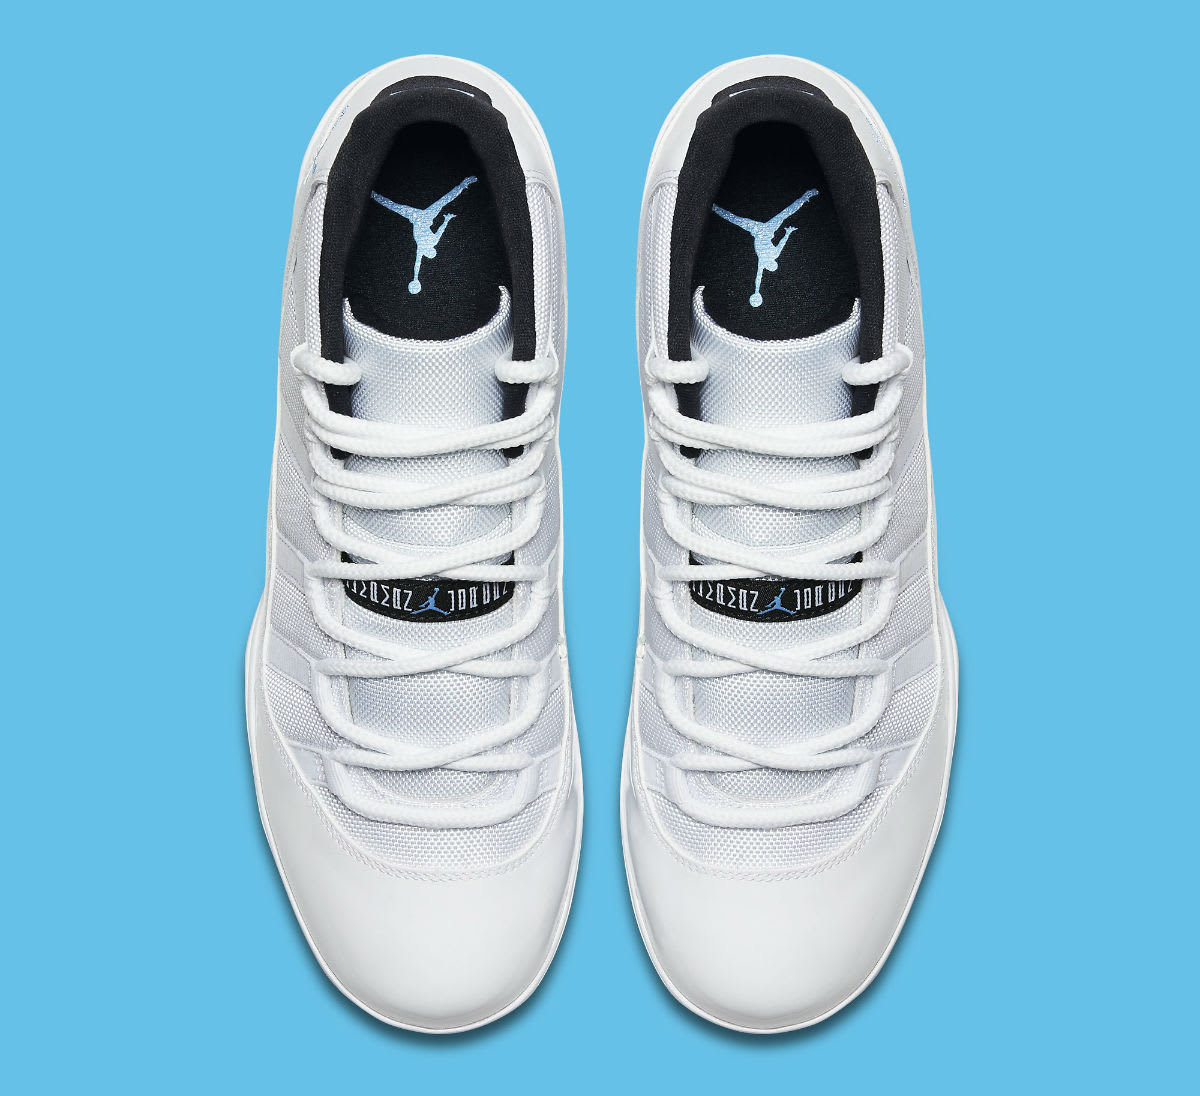 Air Jordan 11 XI Cleats Columbia Release Date AO1561-117 Top